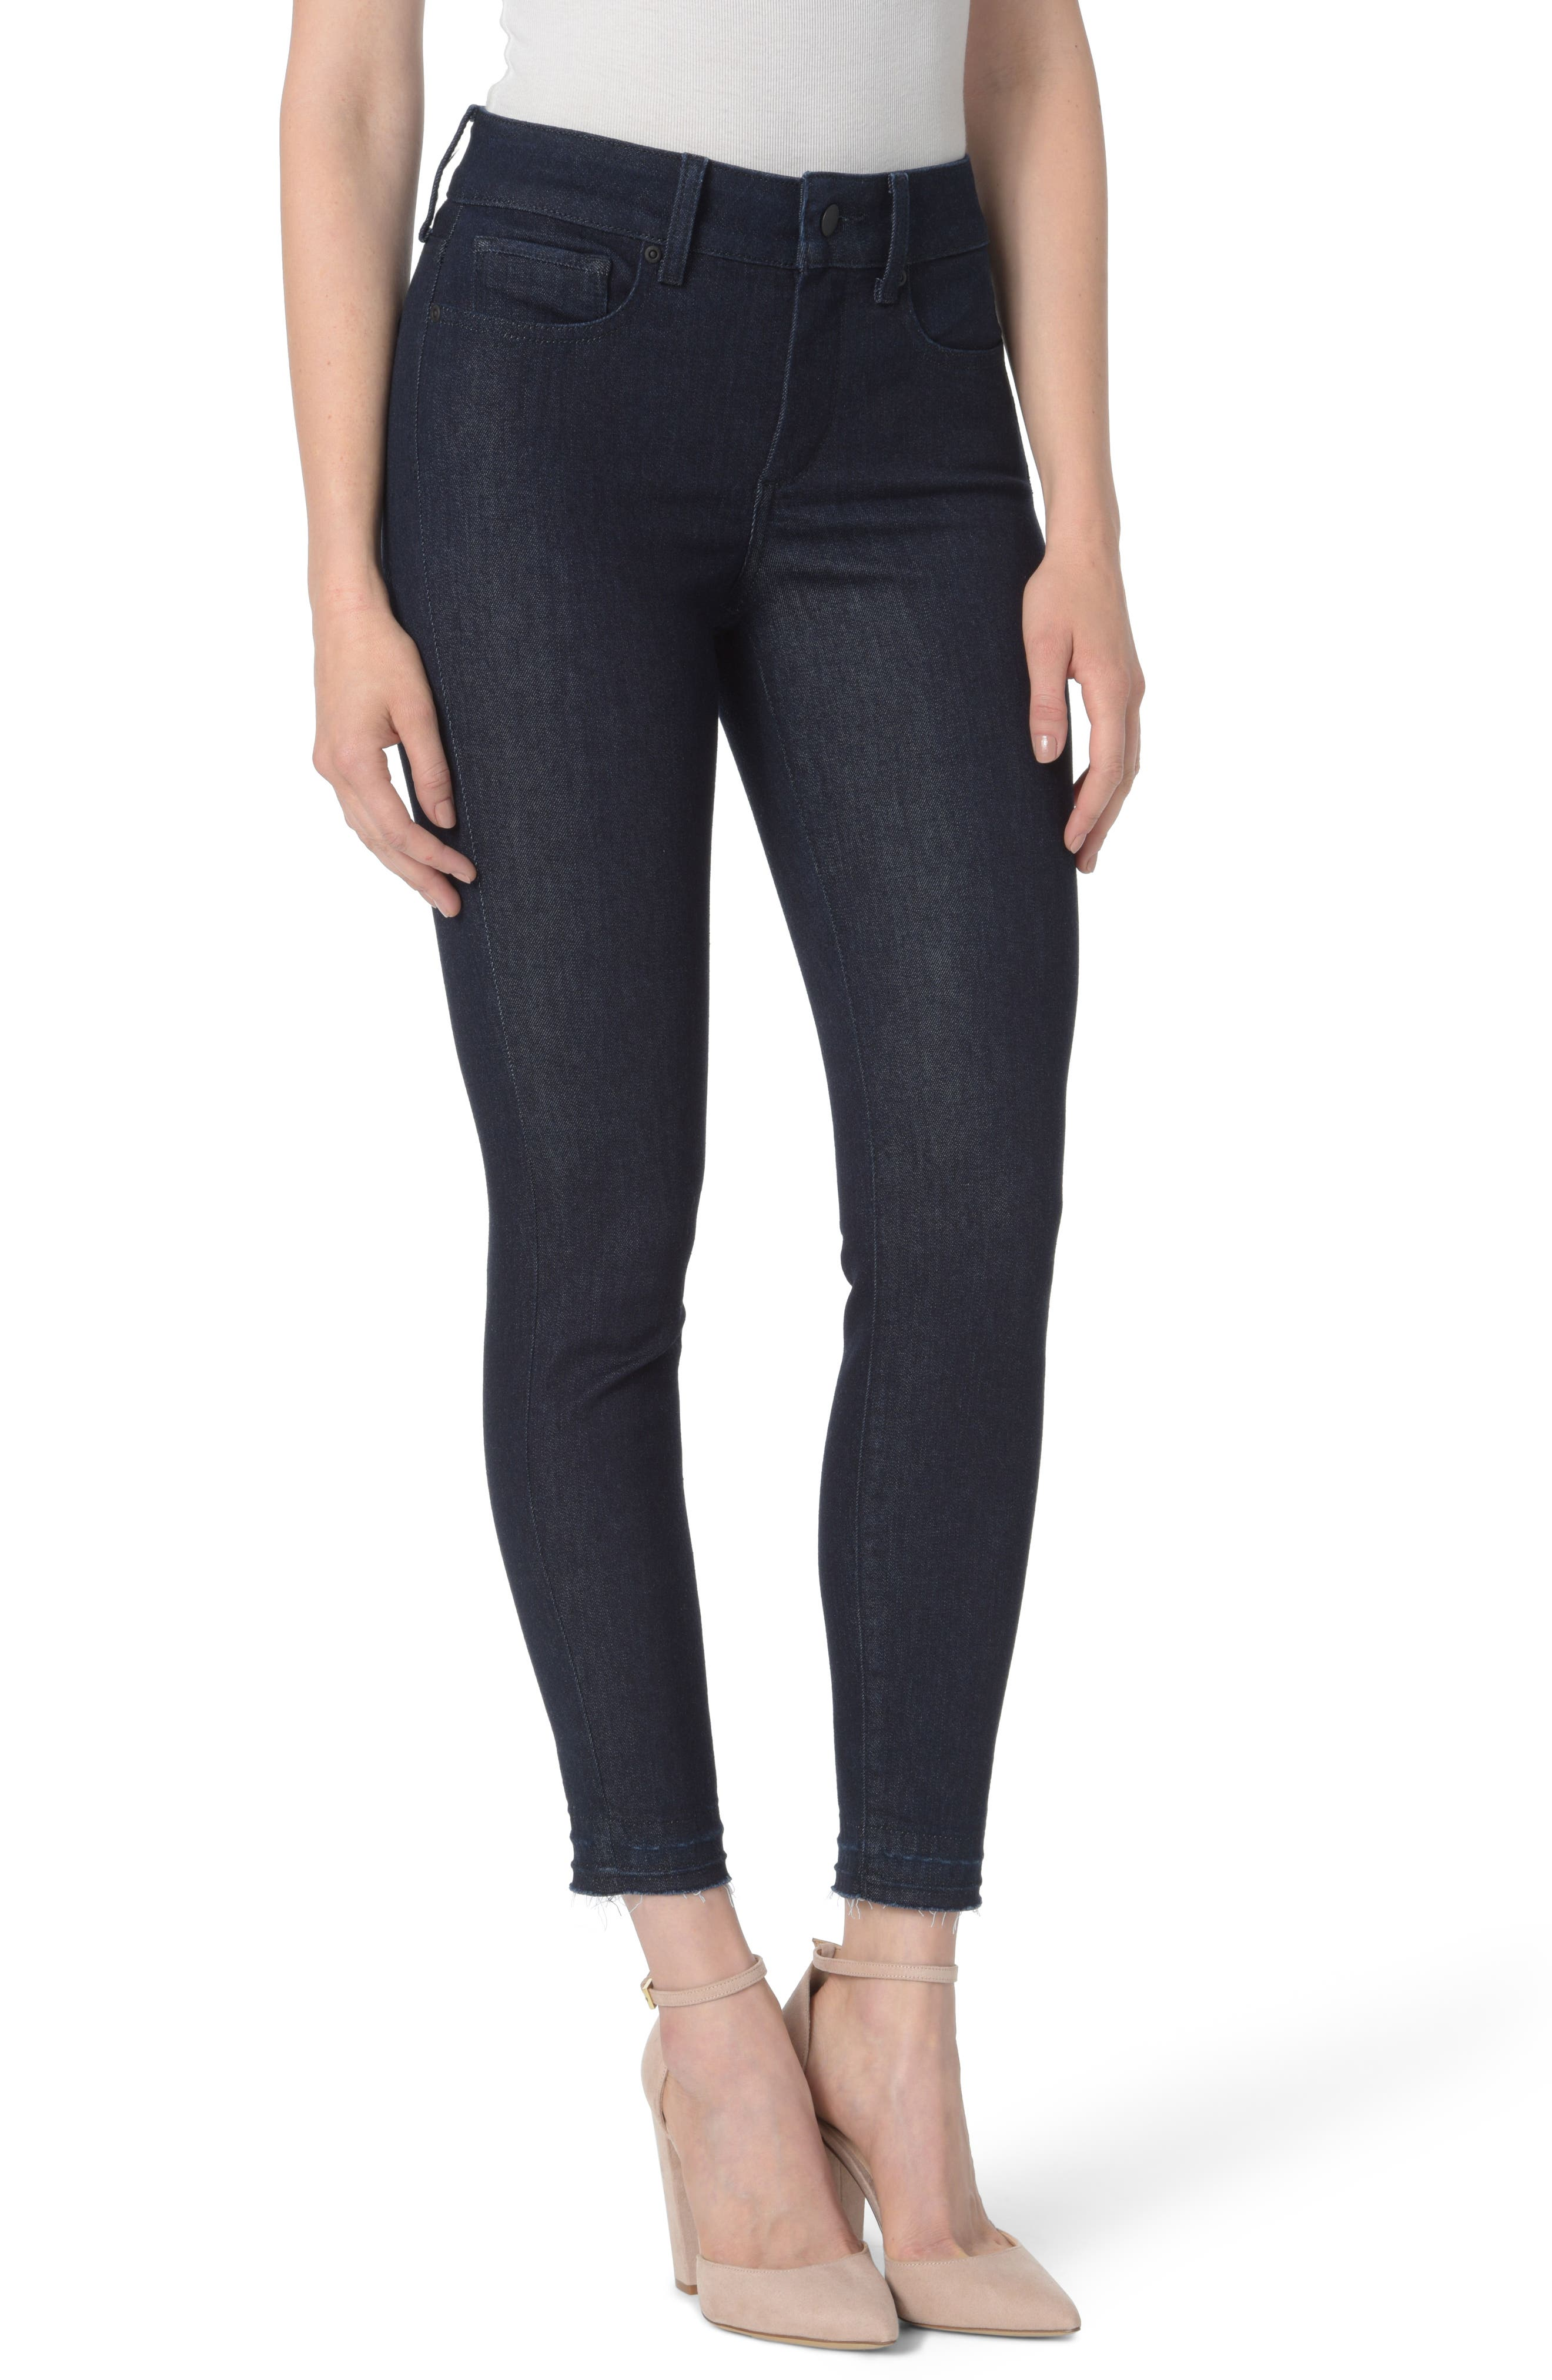 Ami High Waist Release Hem Stretch Ankle Skinny Jeans,                         Main,                         color, 408